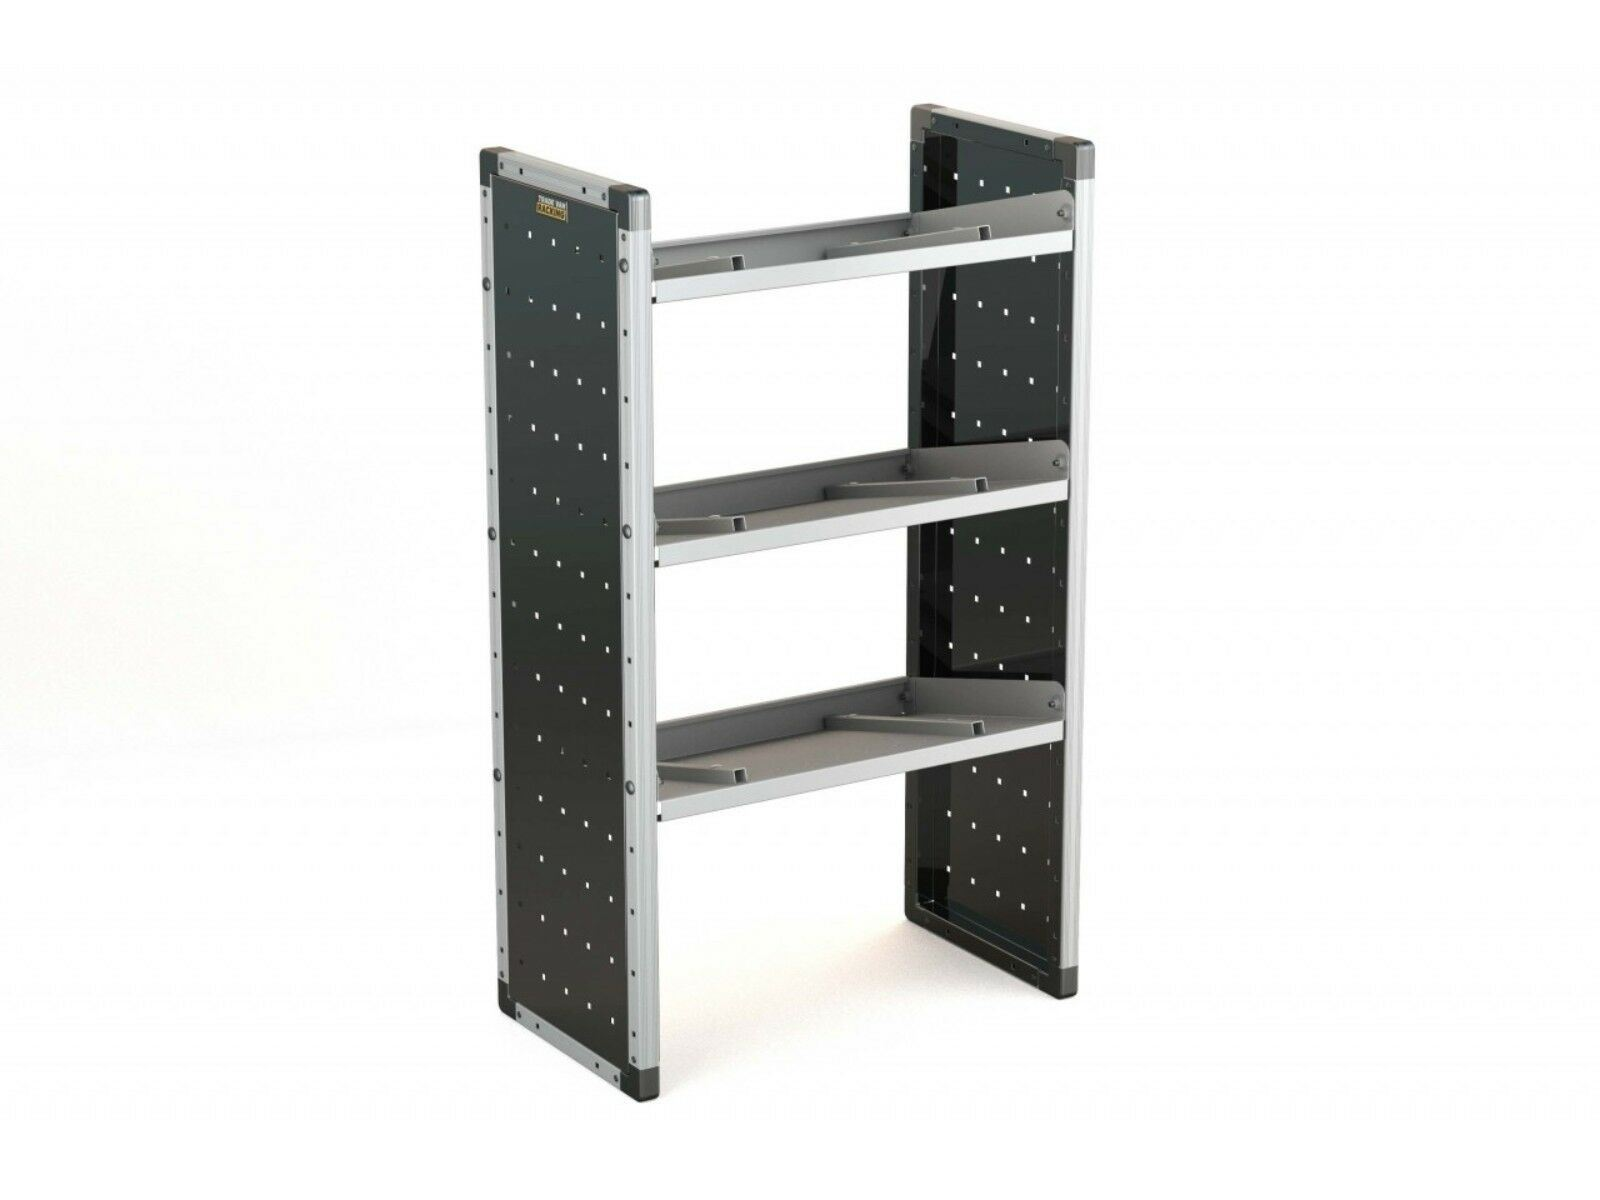 Van Guard Aluminium Racking Angled Shelf Triple Unit Storage System Universal Ebay